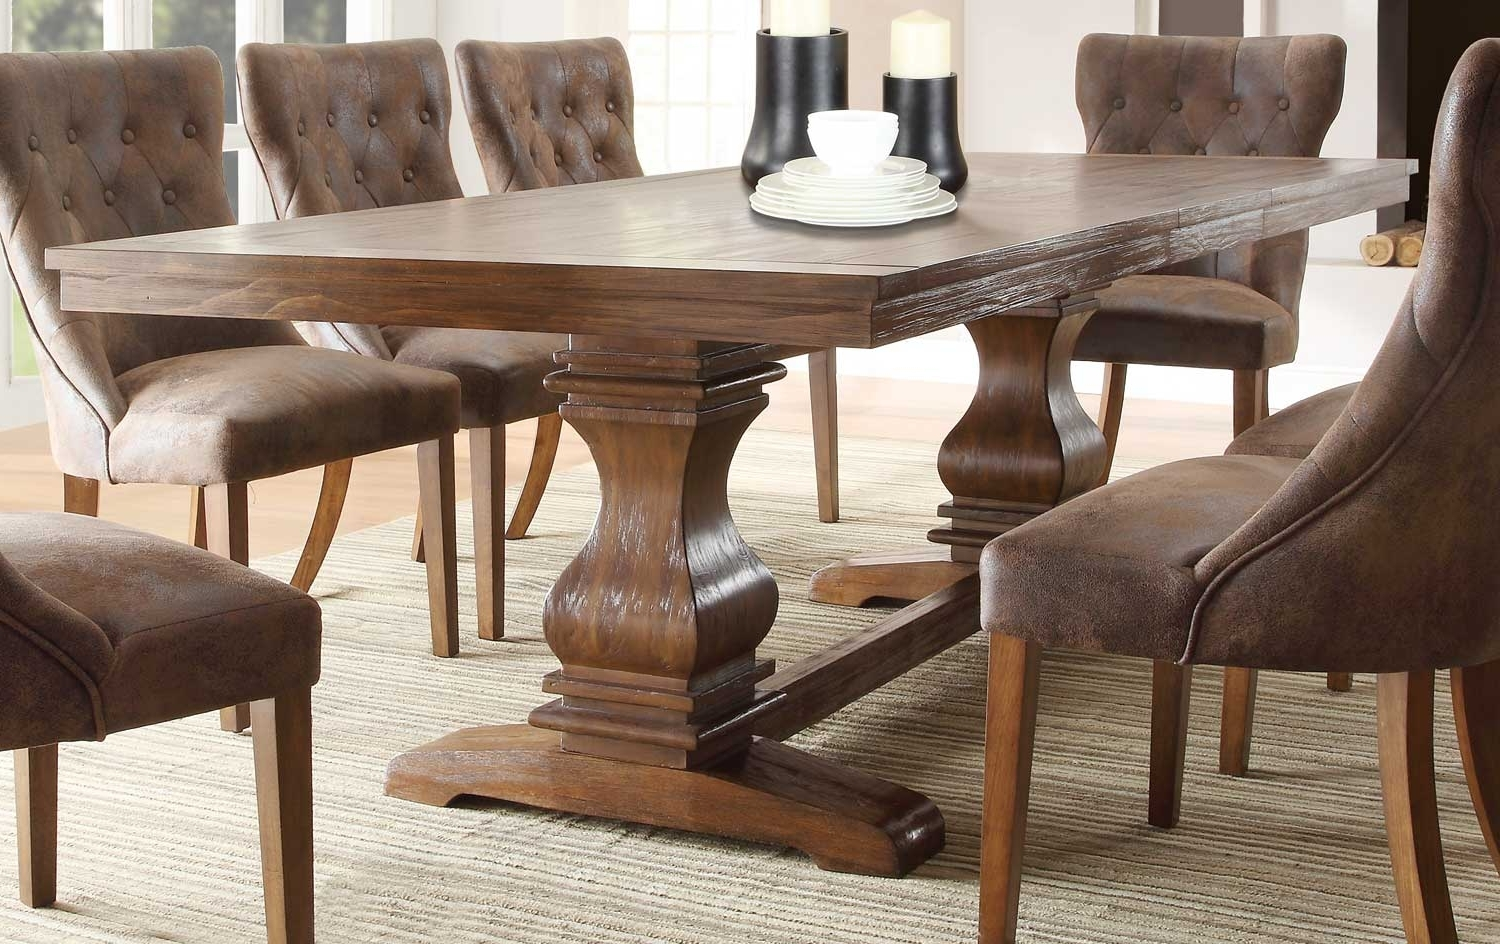 Fashionable Cheap Dining Room Chairs Regarding Homelegance Marie Louise Dining Table – Rustic Oak Brown 2526 (View 23 of 25)